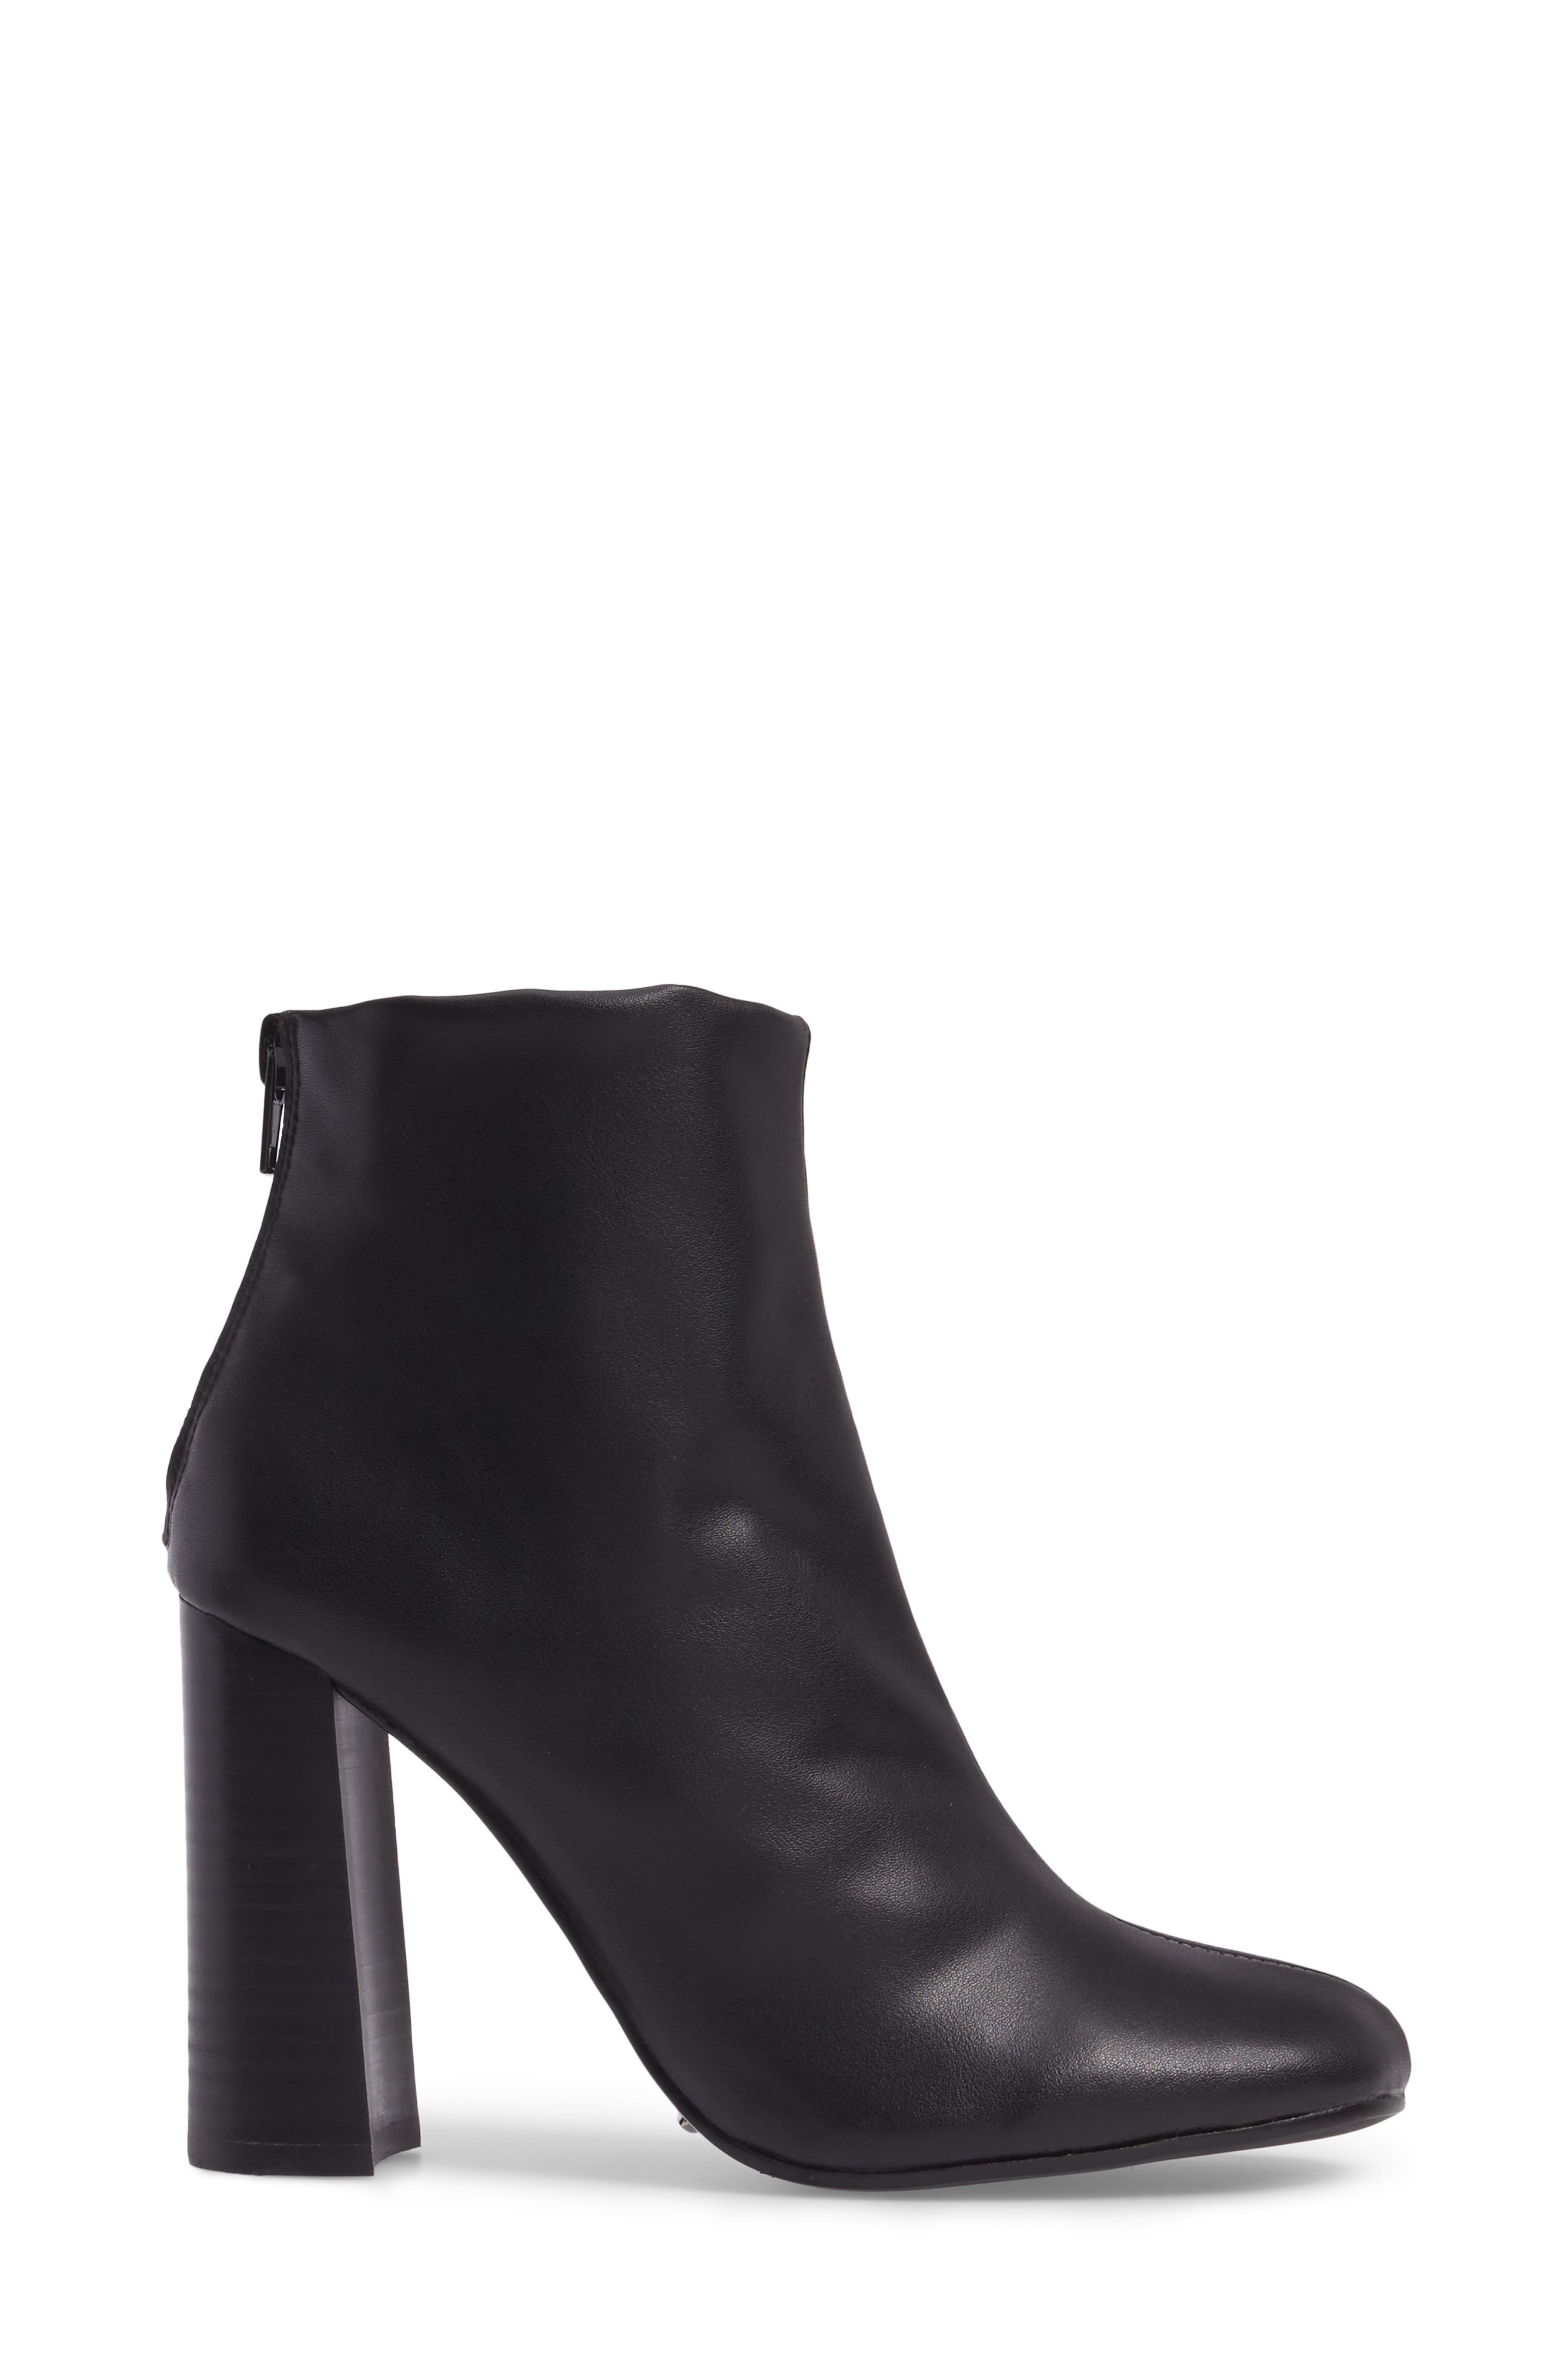 Nyx Stretch Bootie,                             Alternate thumbnail 3, color,                             001